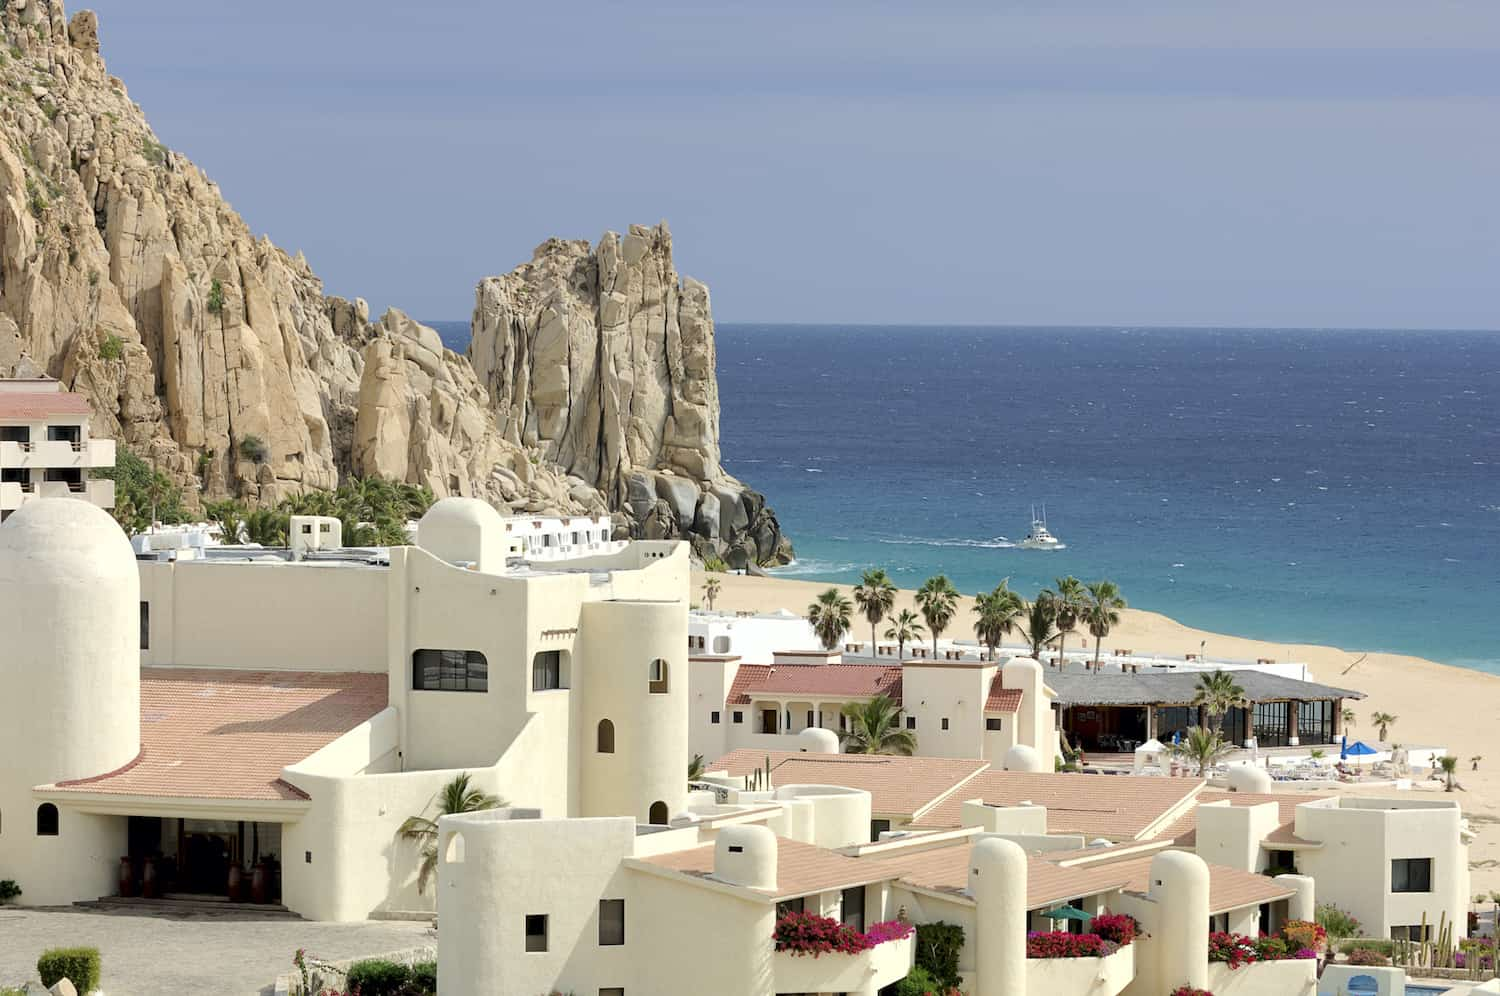 Hotels in Cabo San Lucas